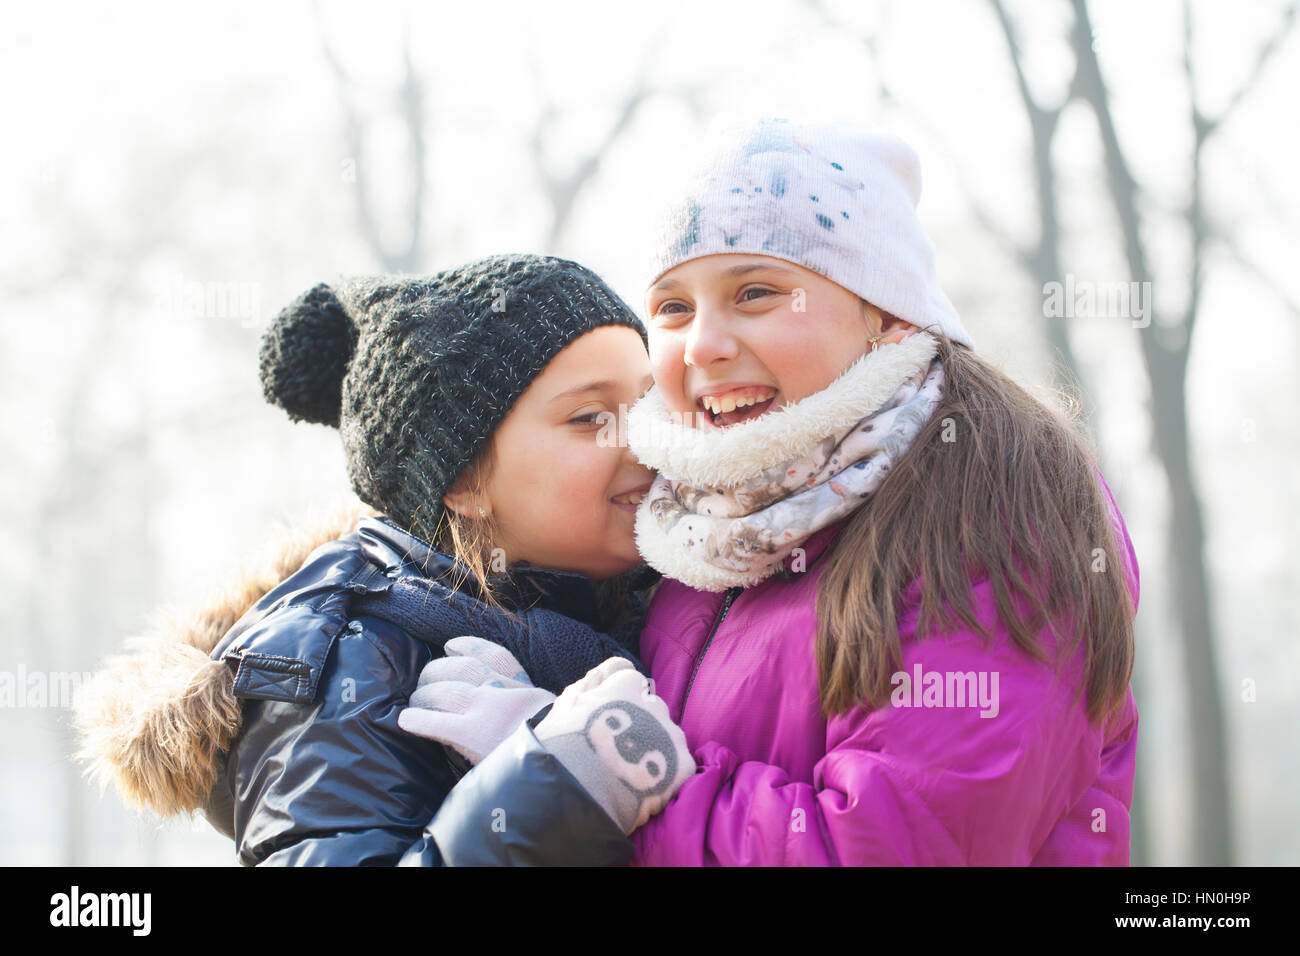 Two little girls with caps and scarves play - Stock Image